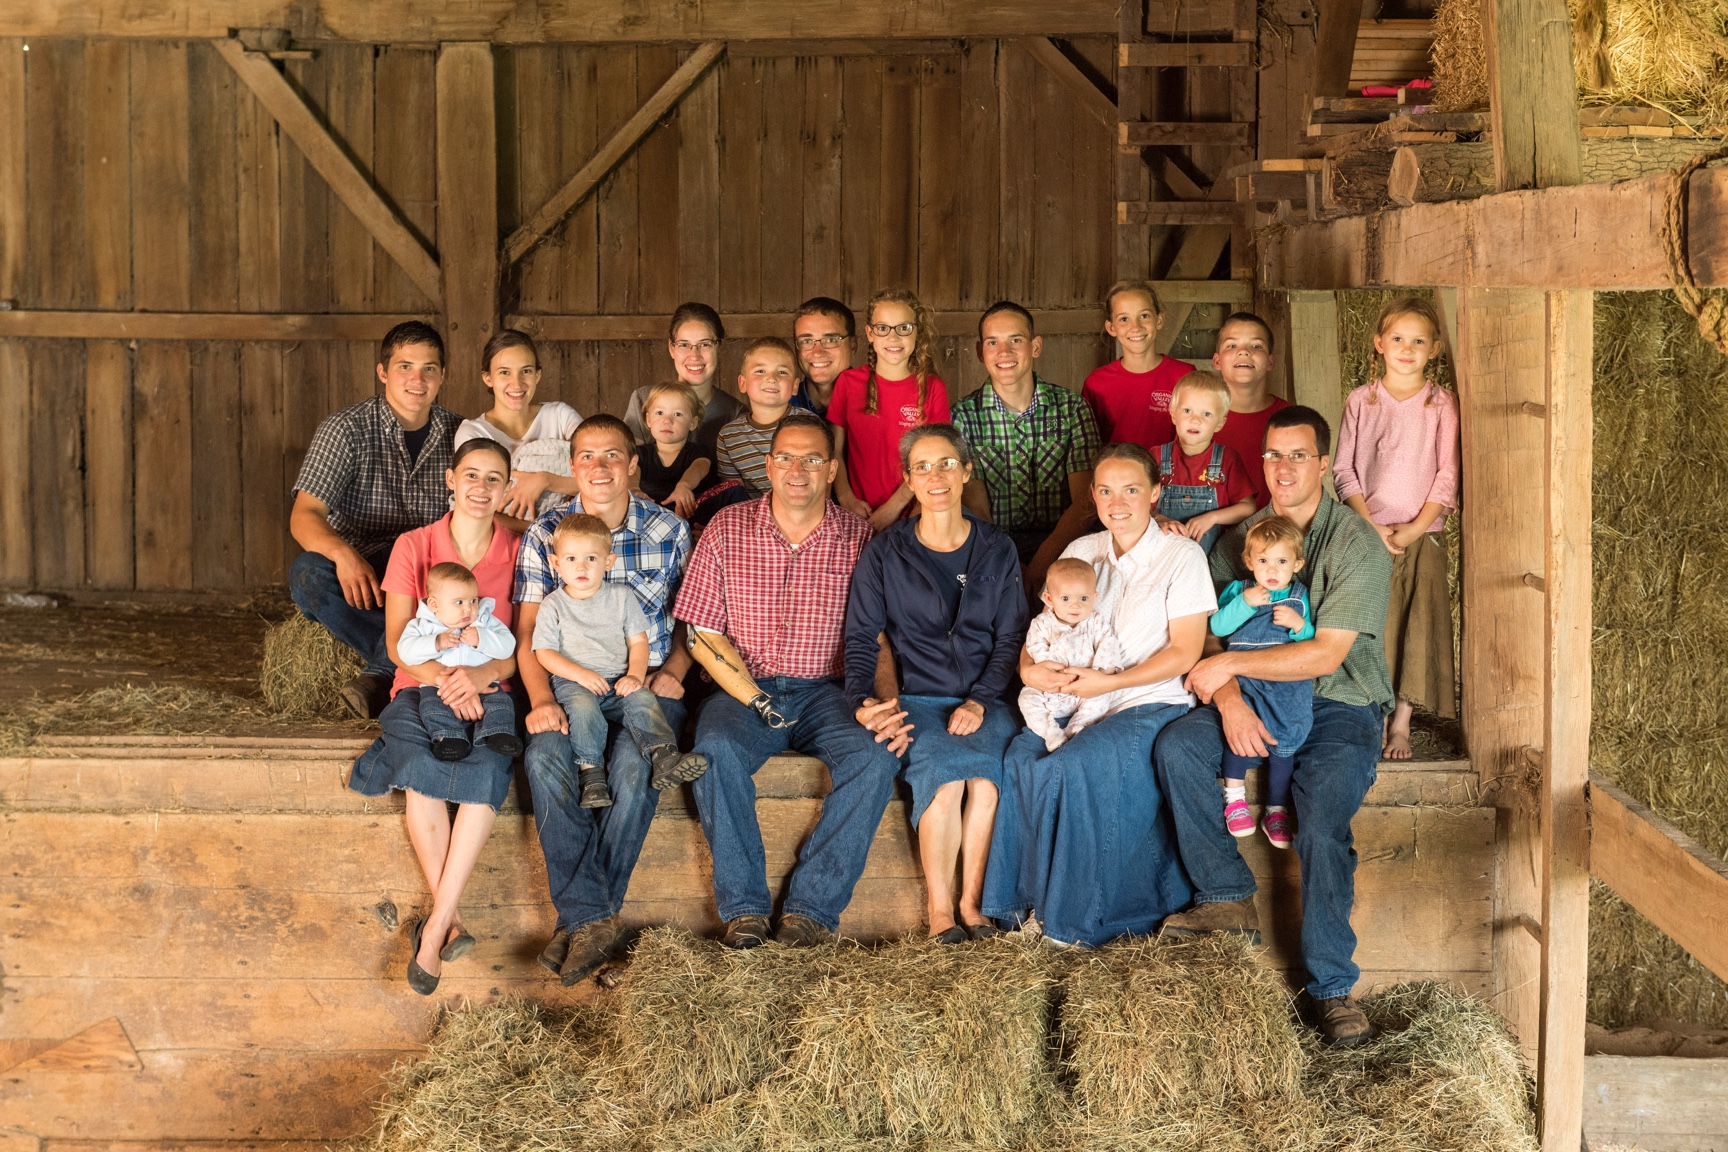 A portrait of a farm family made up of 23 adults, children and infants seated in their barn surrounded by hay bales.